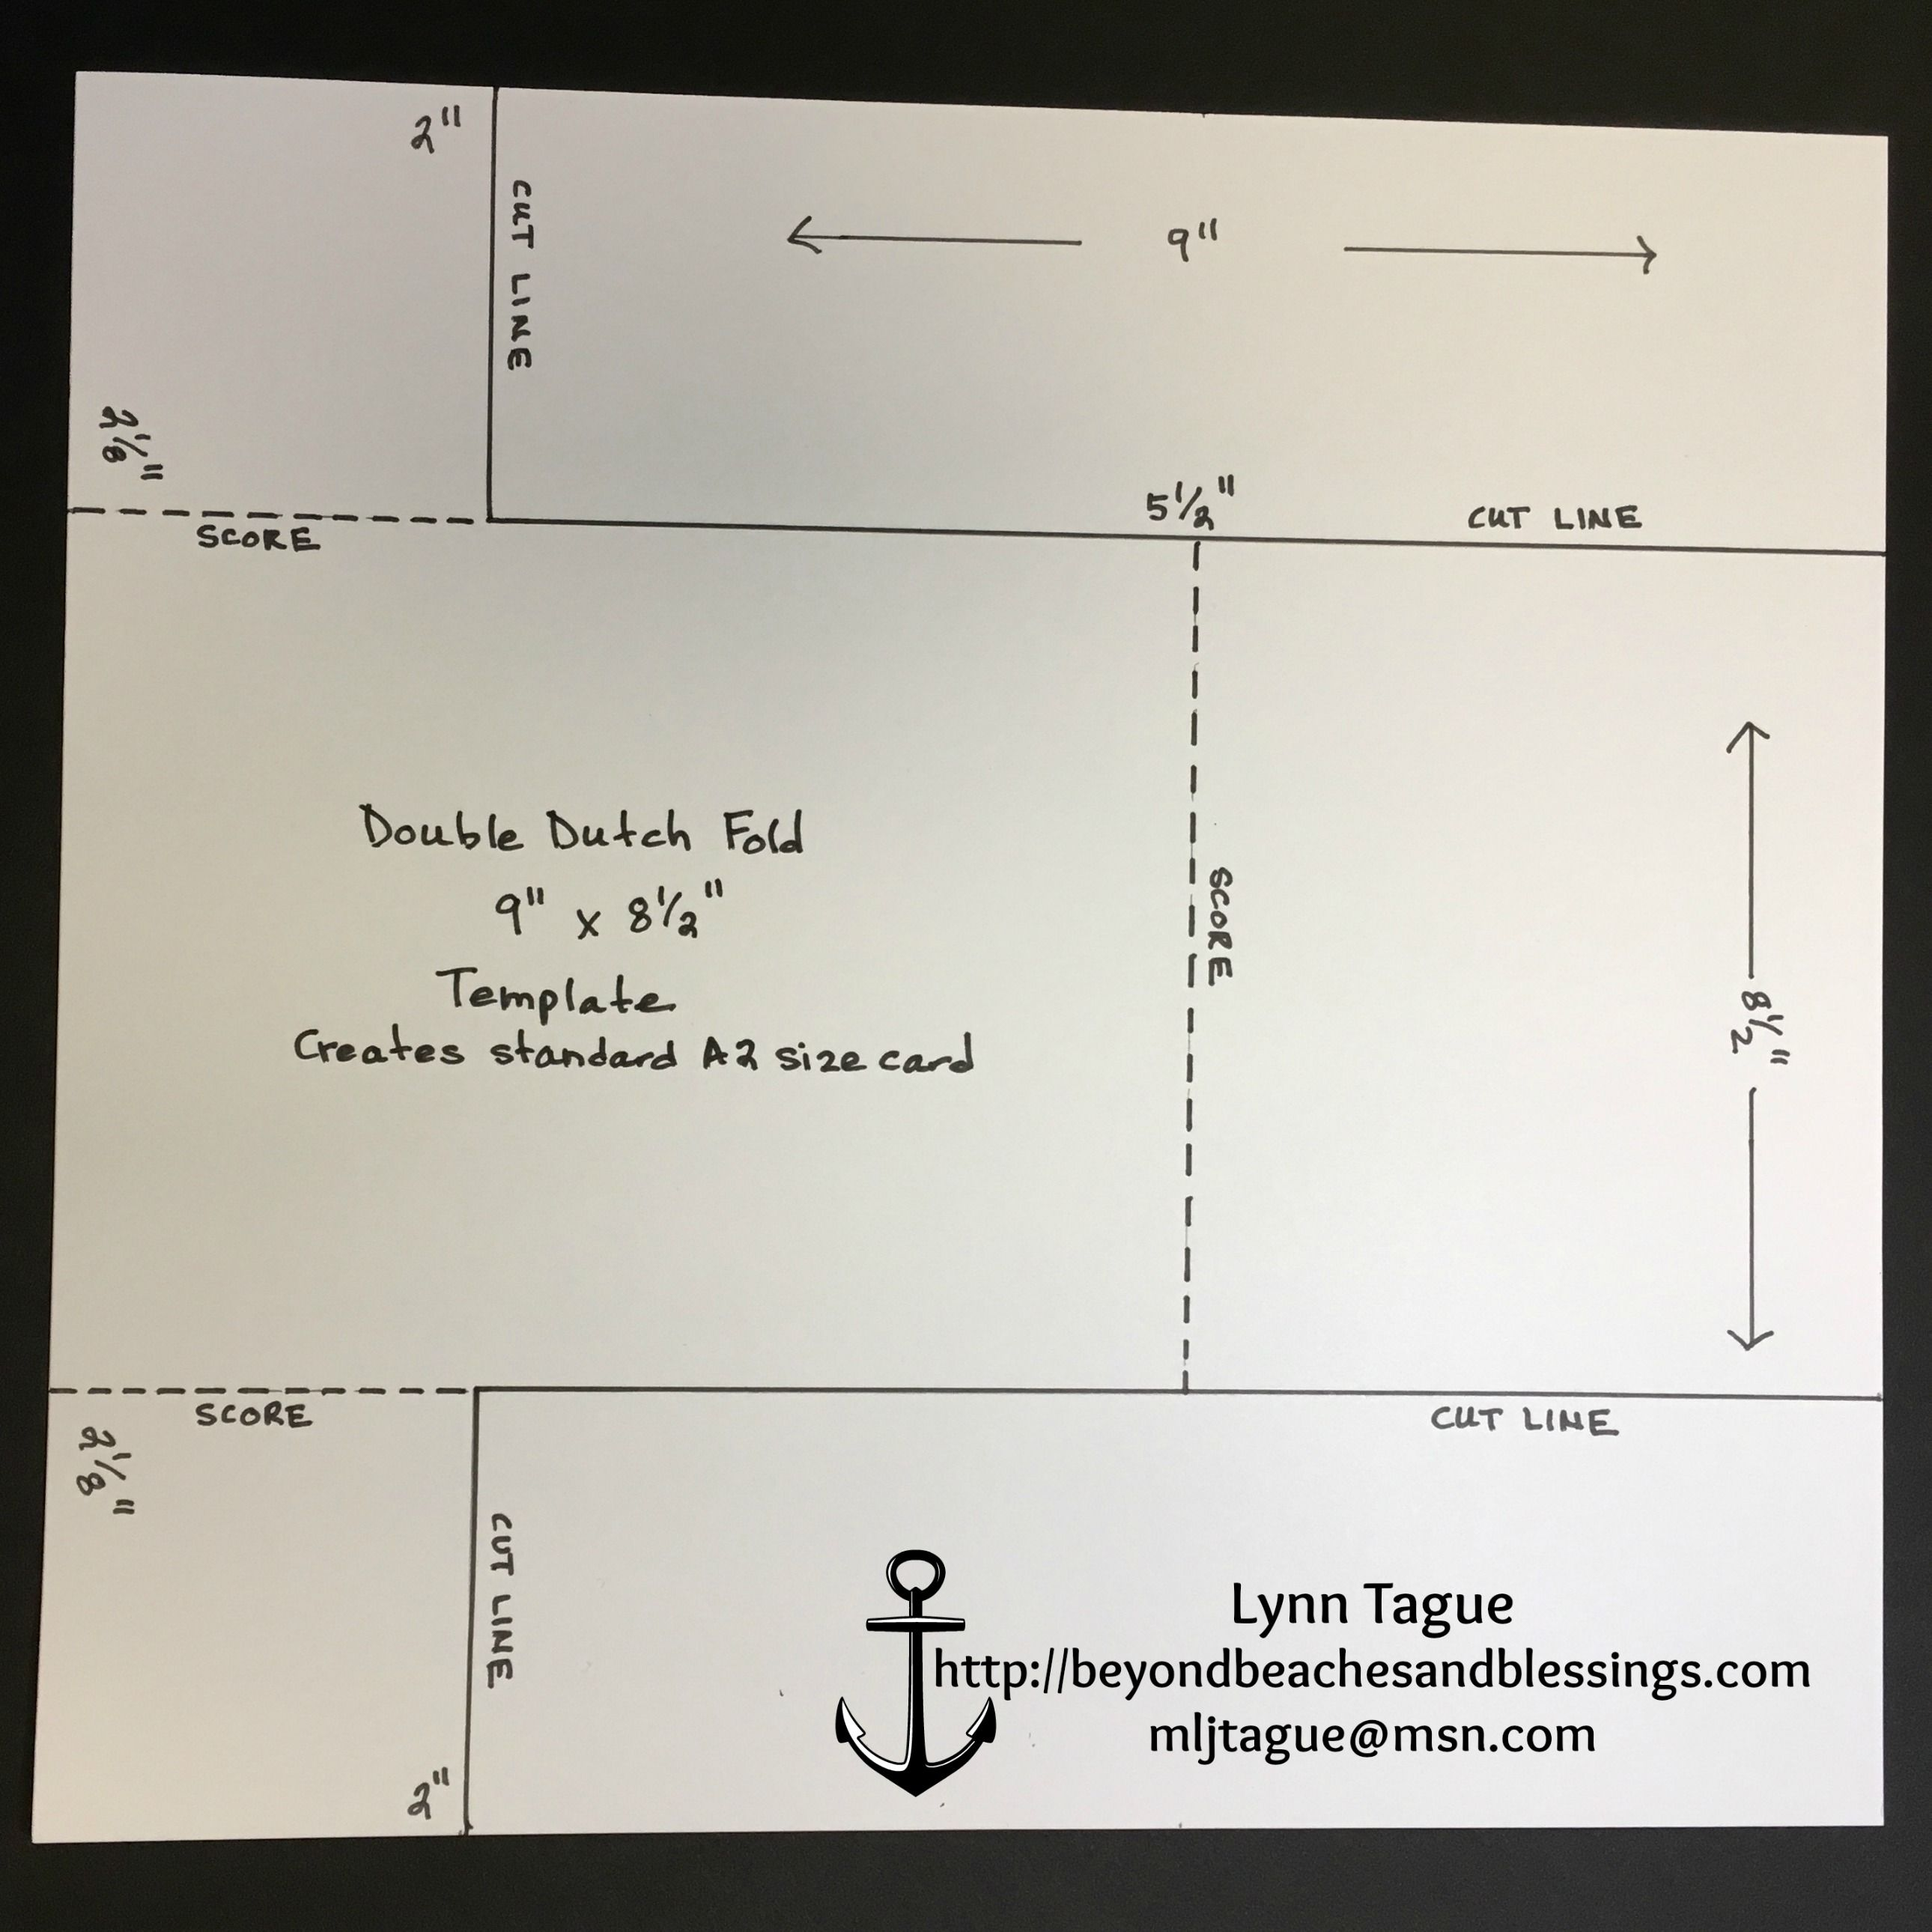 Stampinup Double Dutch Fold Card Template Designed By Demo Lynn Tague See More Cards And Gift Ideas At Beyondbeachesandblessings